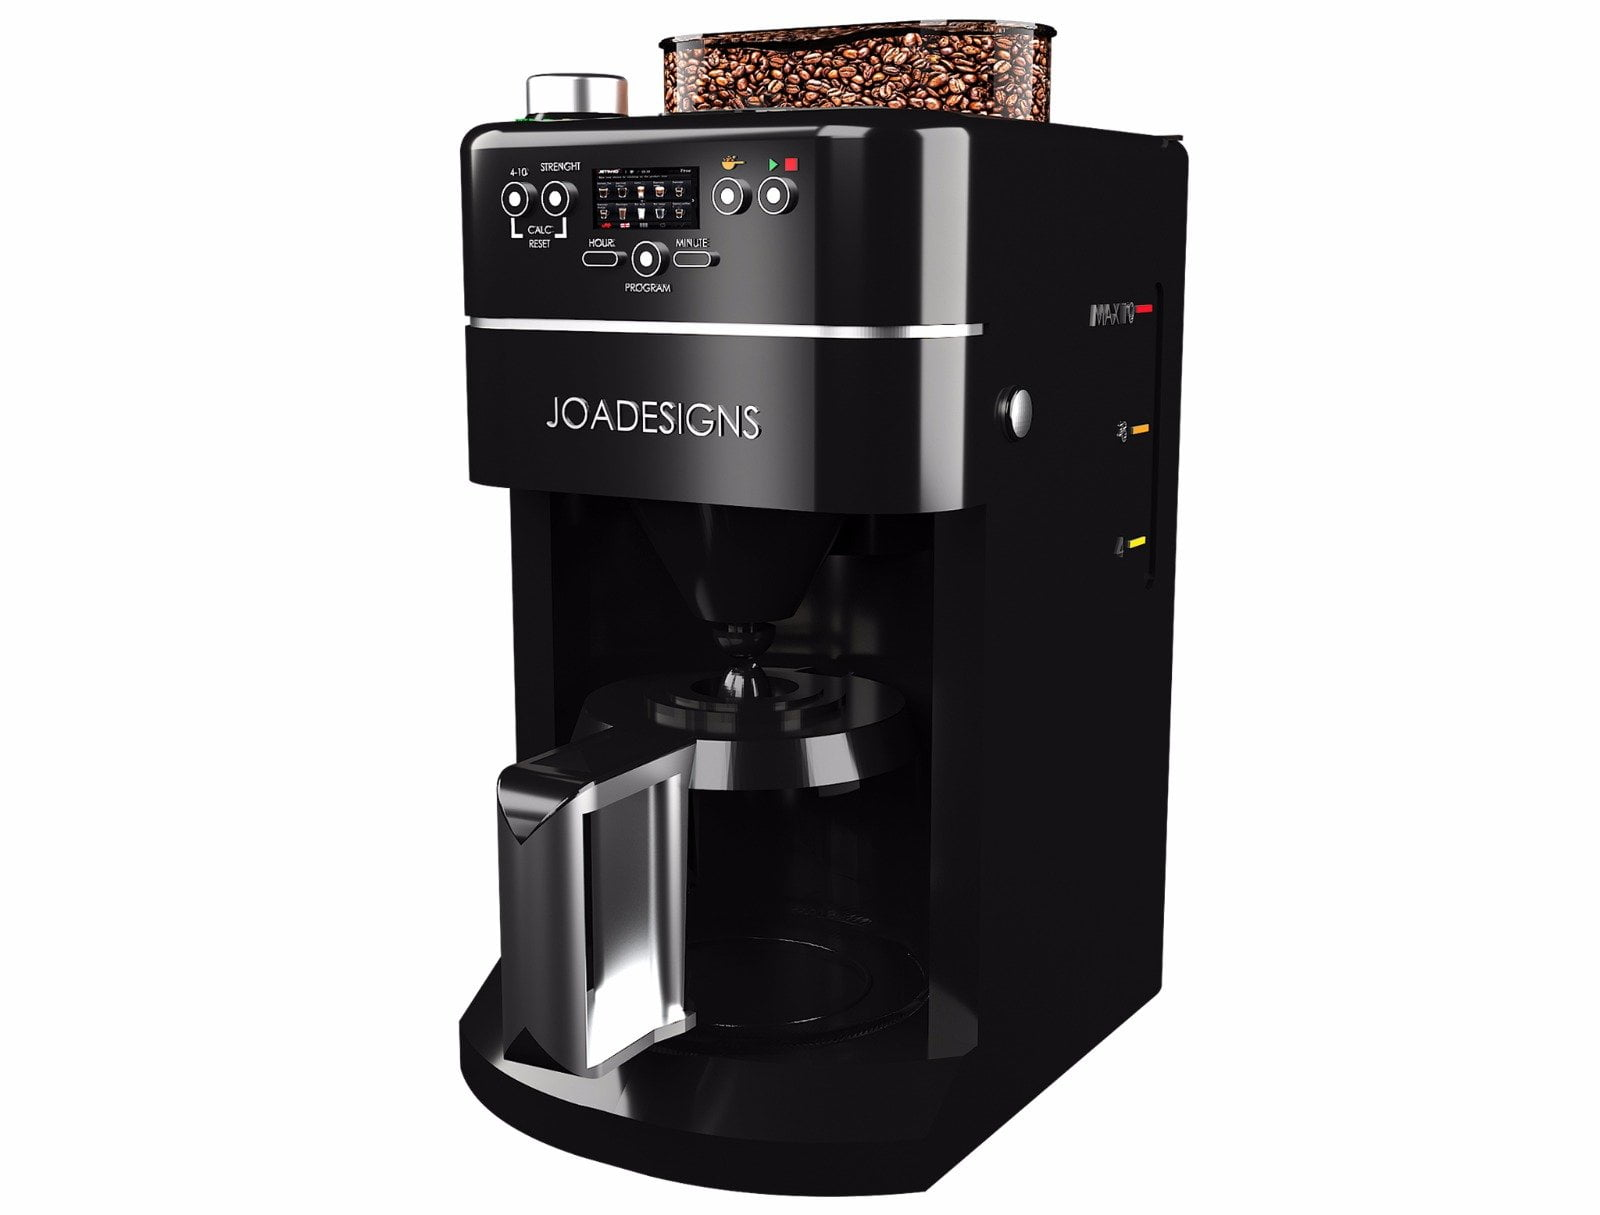 product design 3D Rendering of a drip Coffee machine